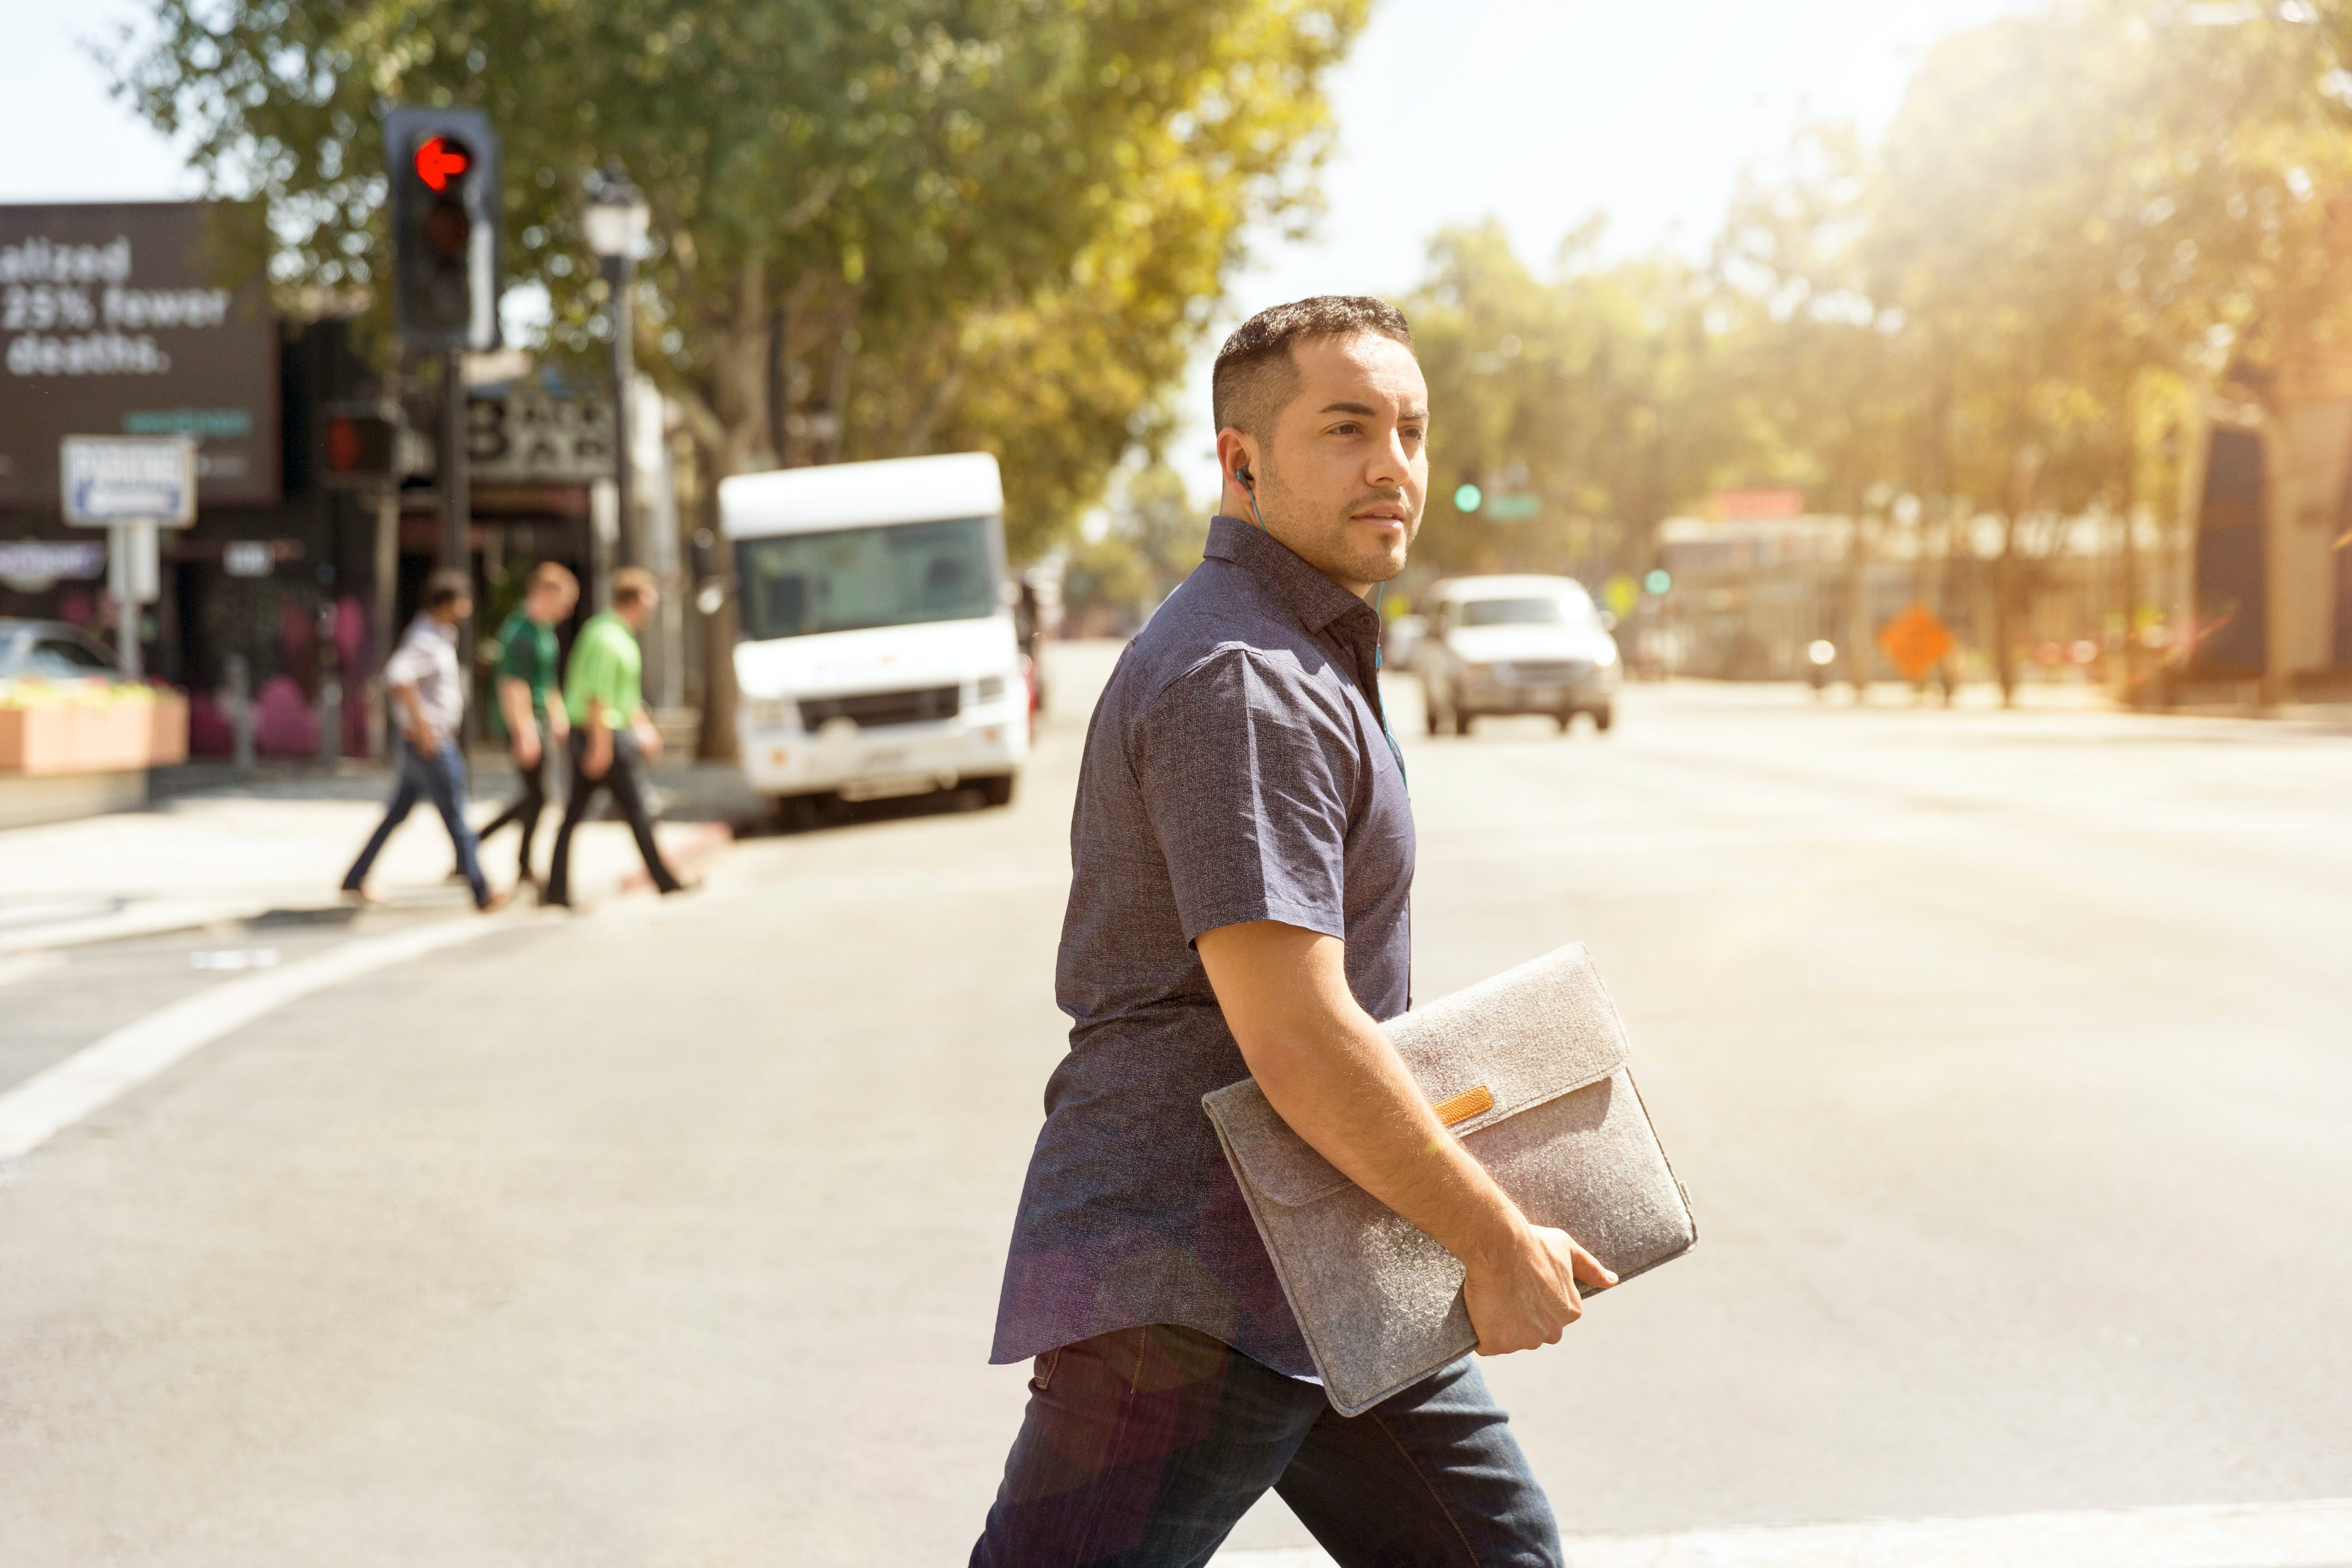 Man Holding Folder Crossing the Road